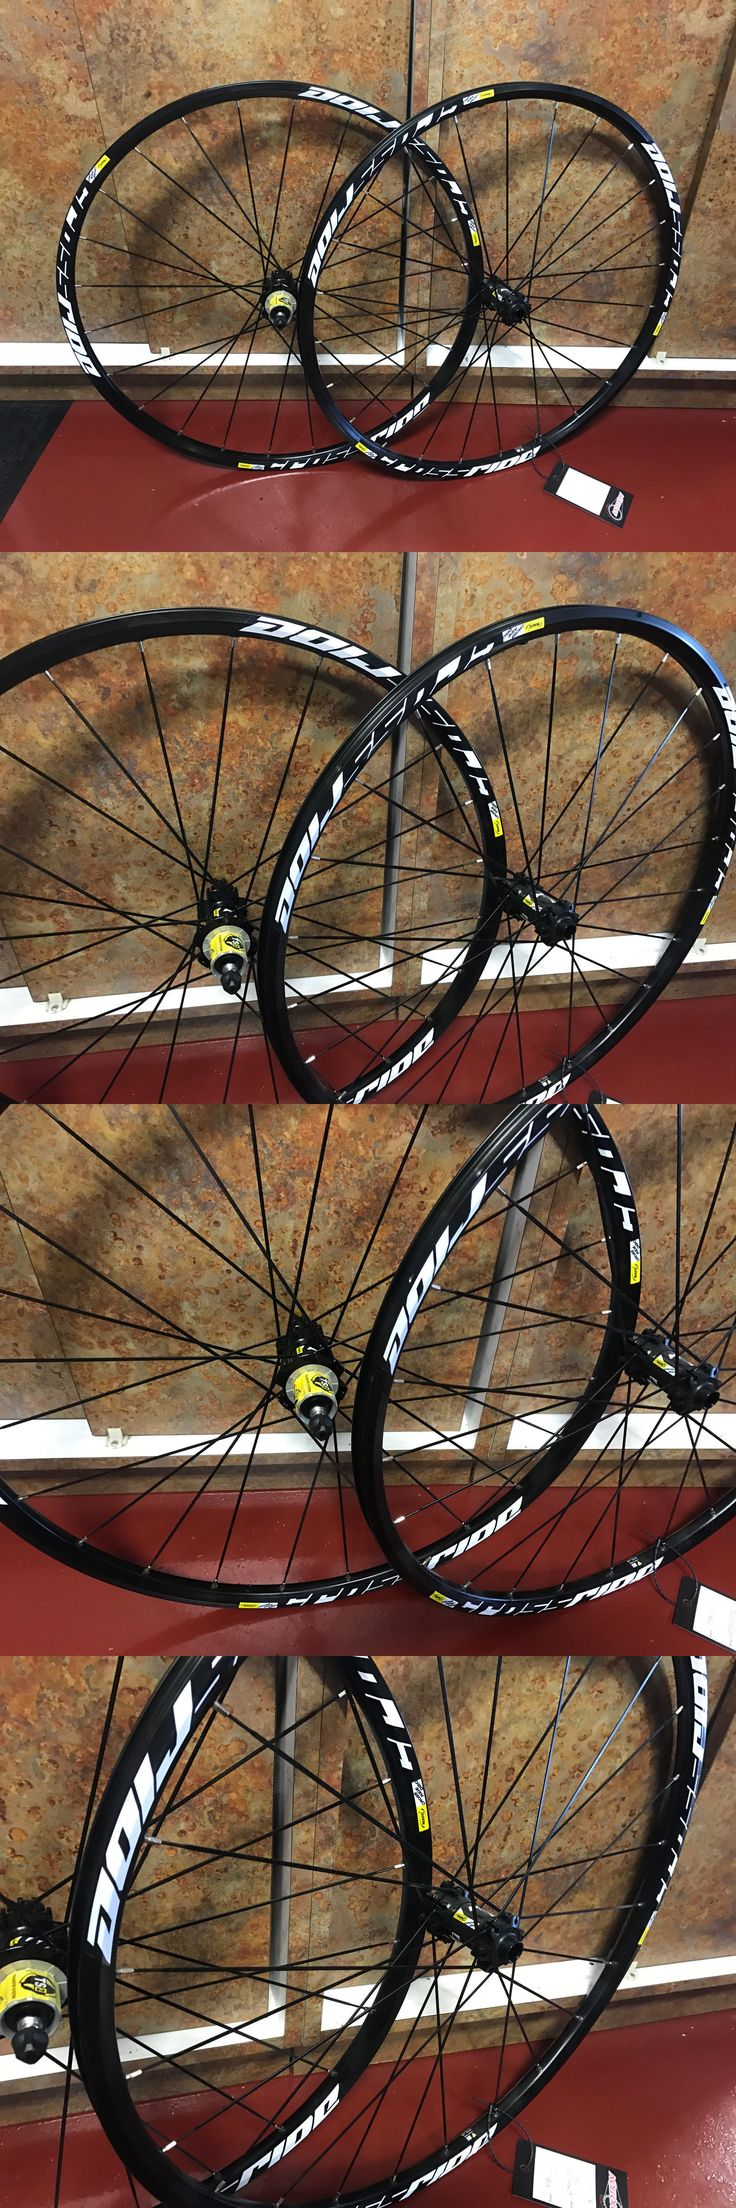 bicycle parts: Mavic Crossride Disc 6 Bolt 29 Mtb Mountain Bike Clincher Wheelset BUY IT NOW ONLY: $225.0